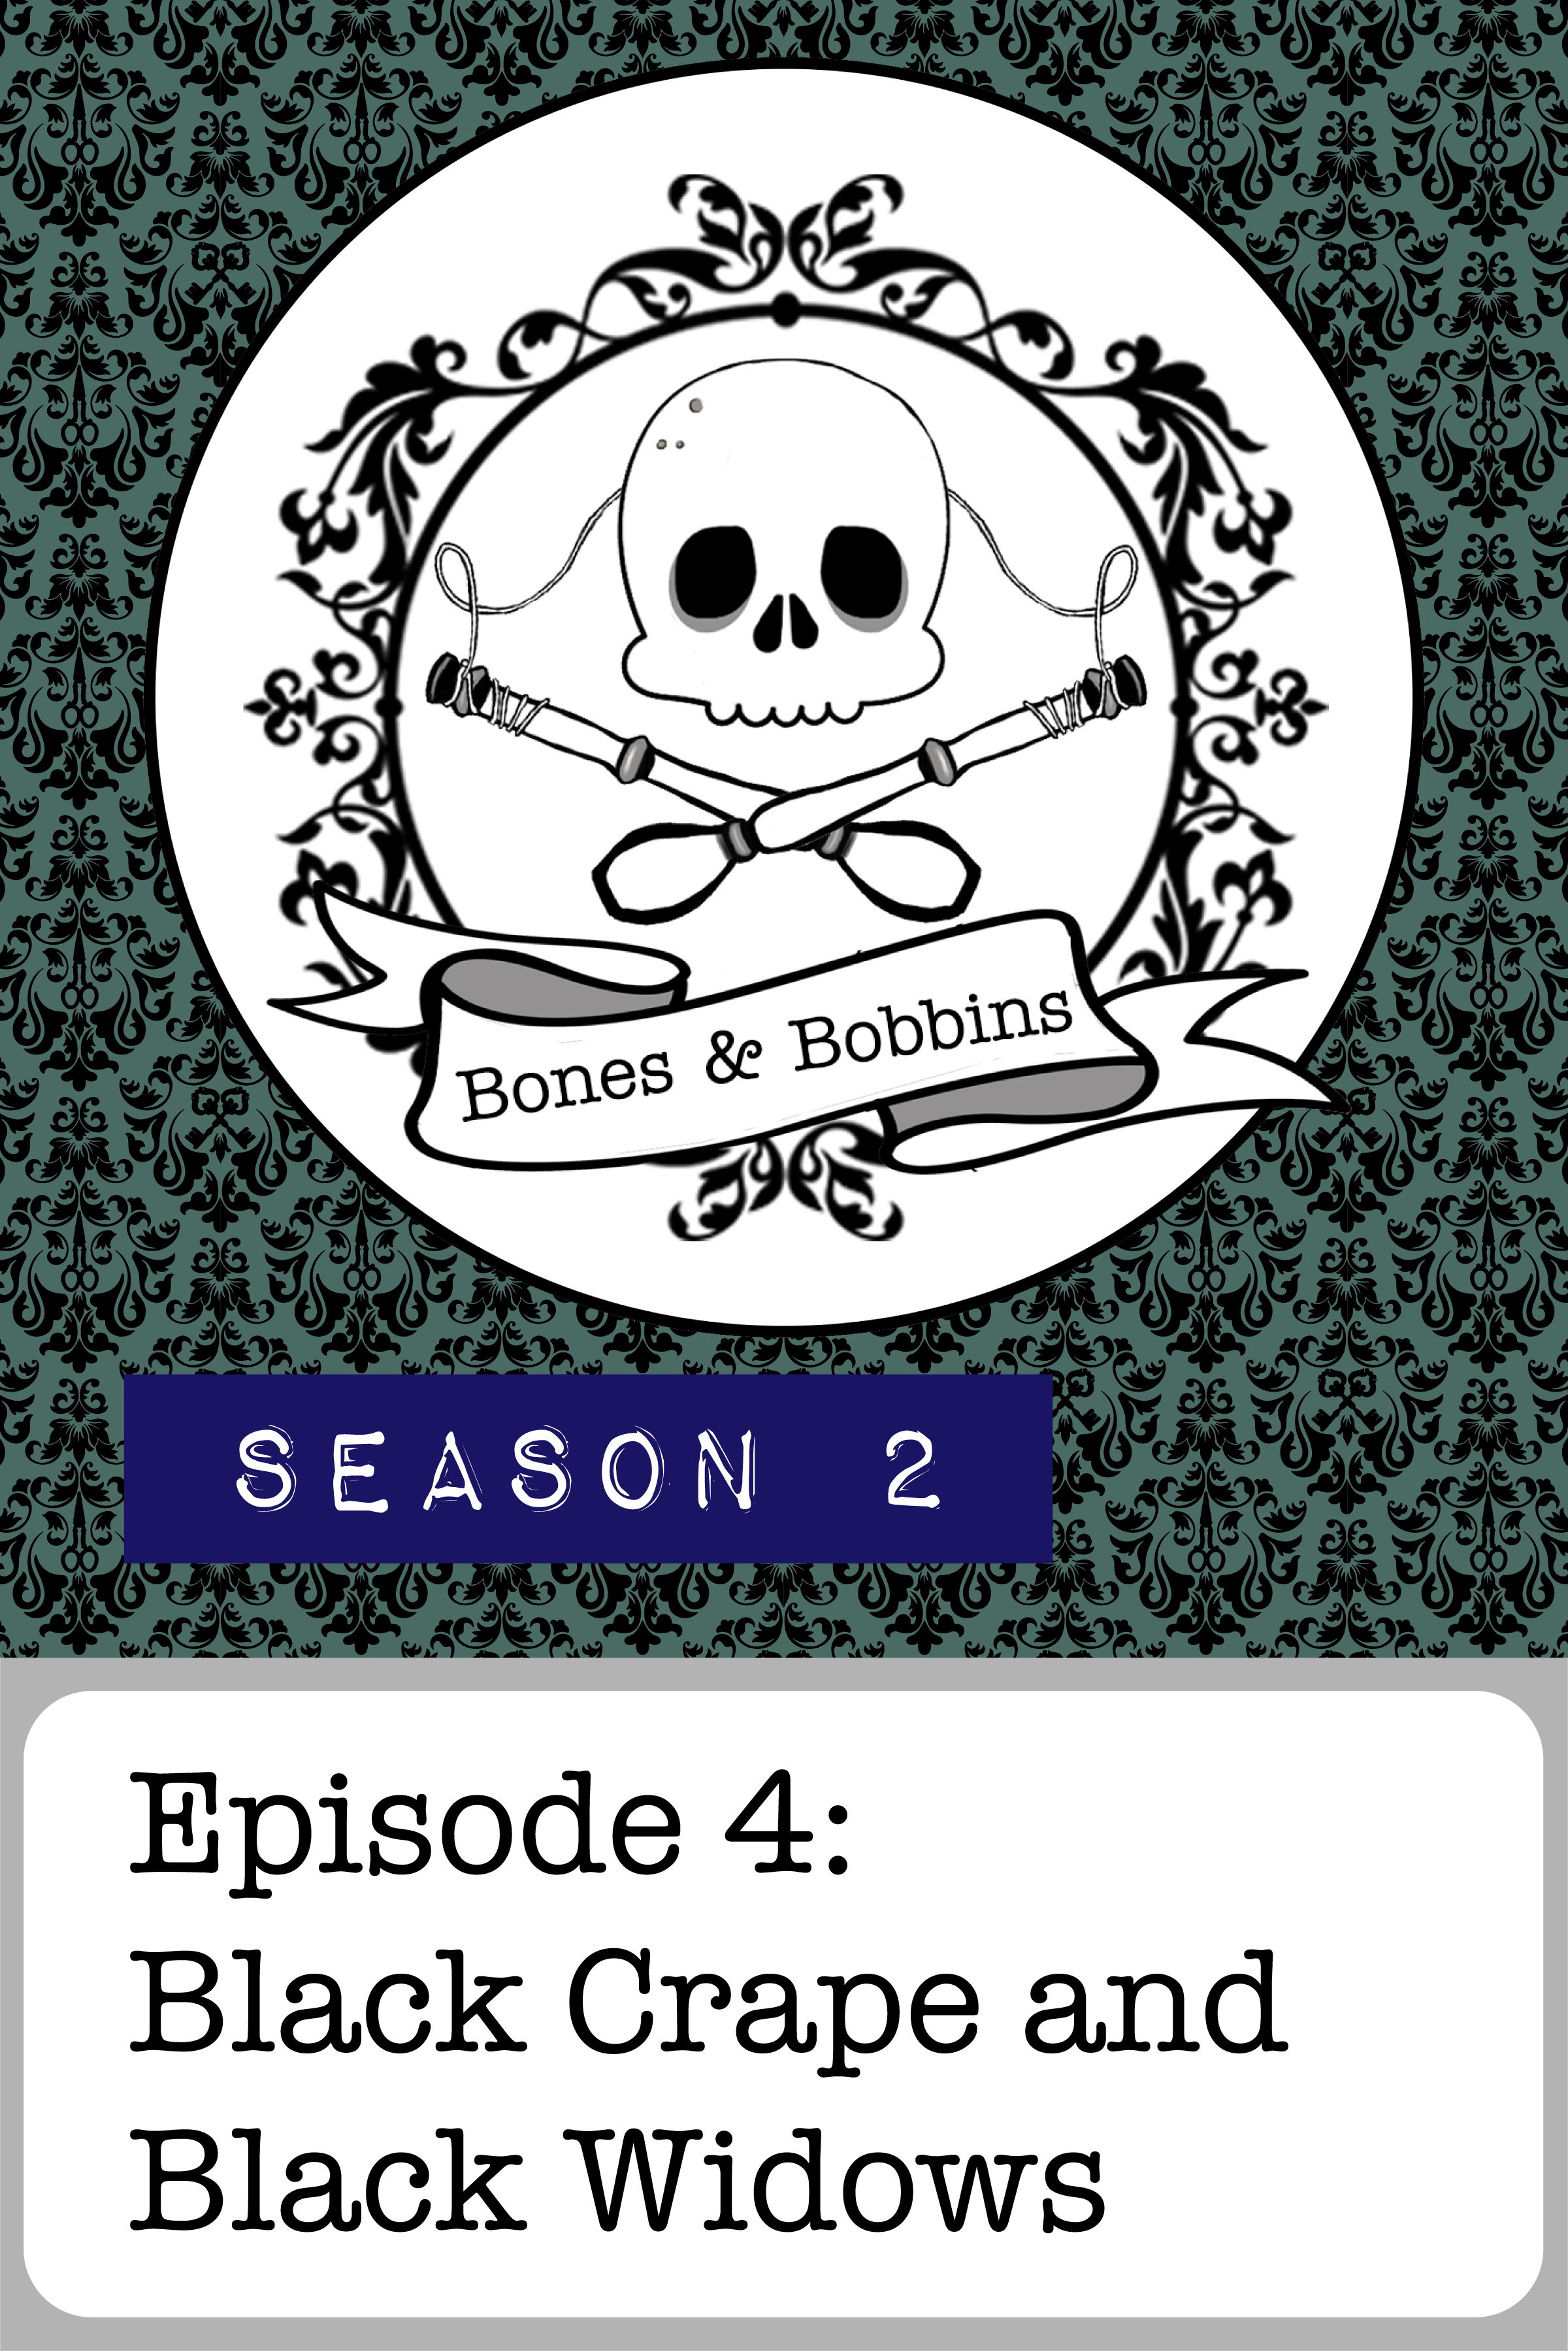 The Bones & Bobbins Podcast, Season 2, Episode 04: Black Crape and Black Widows